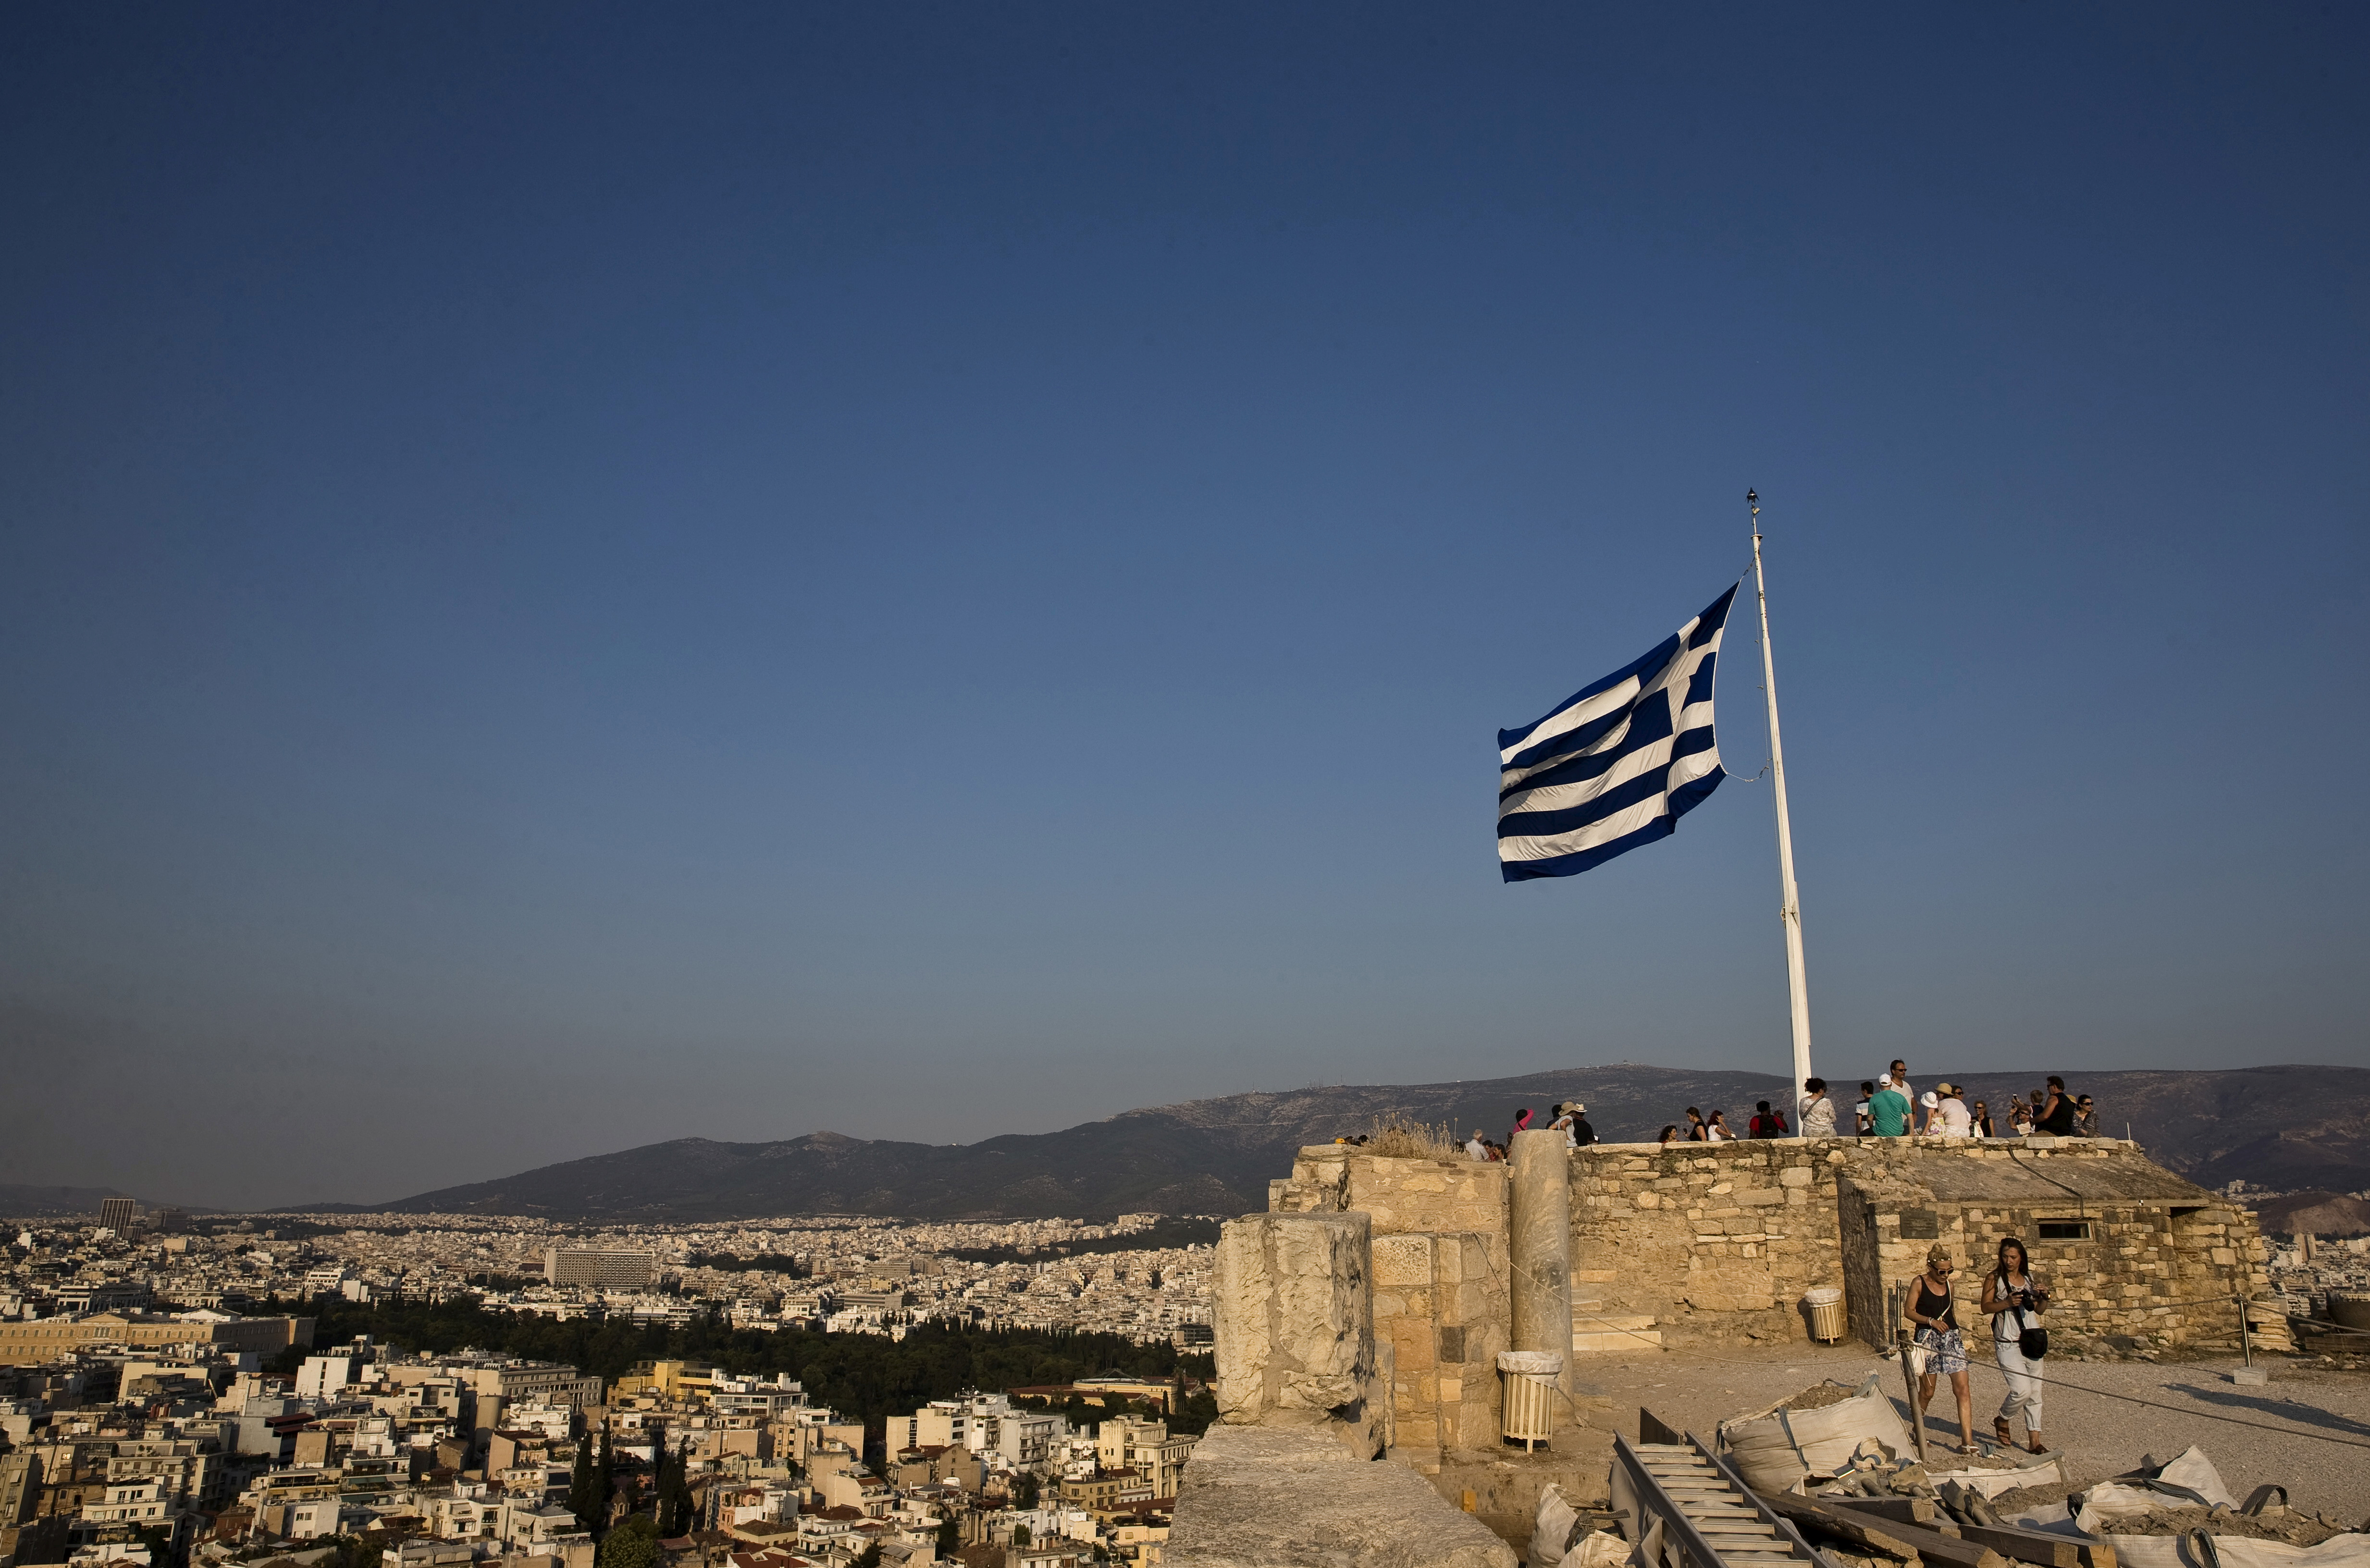 """A Greek flag flutters in the wind as tourists visit the archaeological site of the Acropolis hill in Athens, Greece July 26, 2015.   REUTERS/Ronen Zvulun/File Photo                      GLOBAL BUSINESS WEEK AHEAD - SEARCH """"GLOBAL BUSINESS AUG 29"""" FOR ALL IMAGES? - S1AETYDHNXAA"""